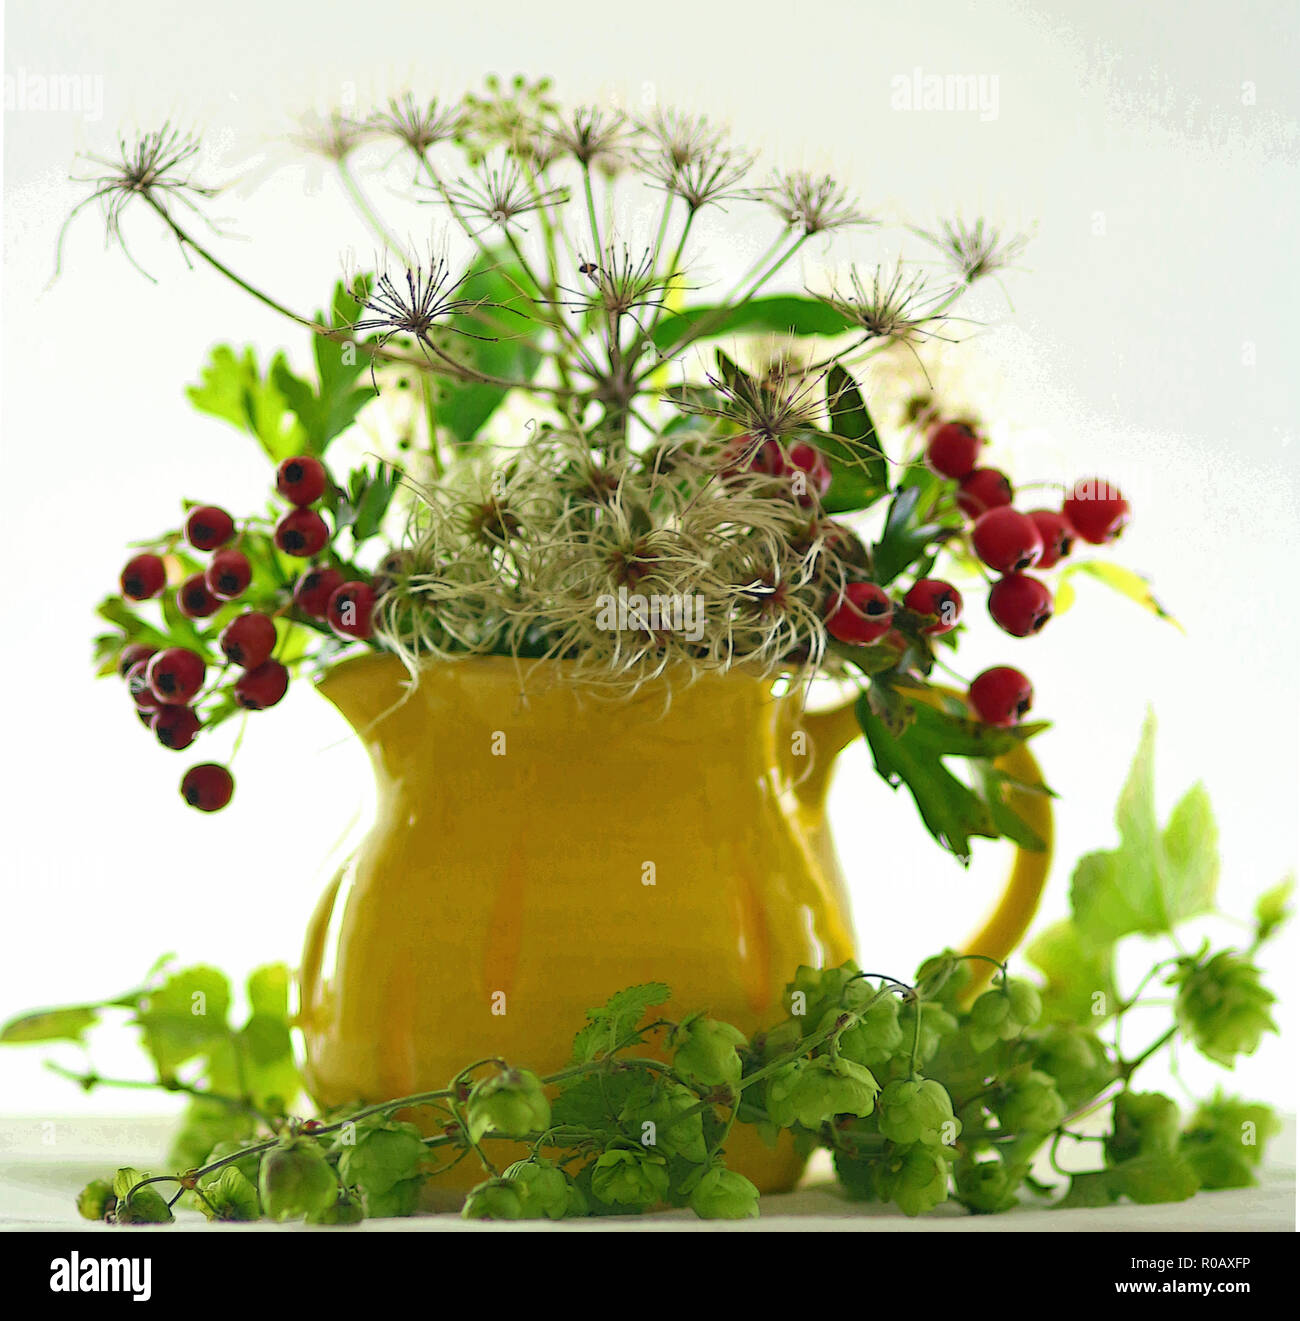 Hops and berries in a yellow jug - Stock Image